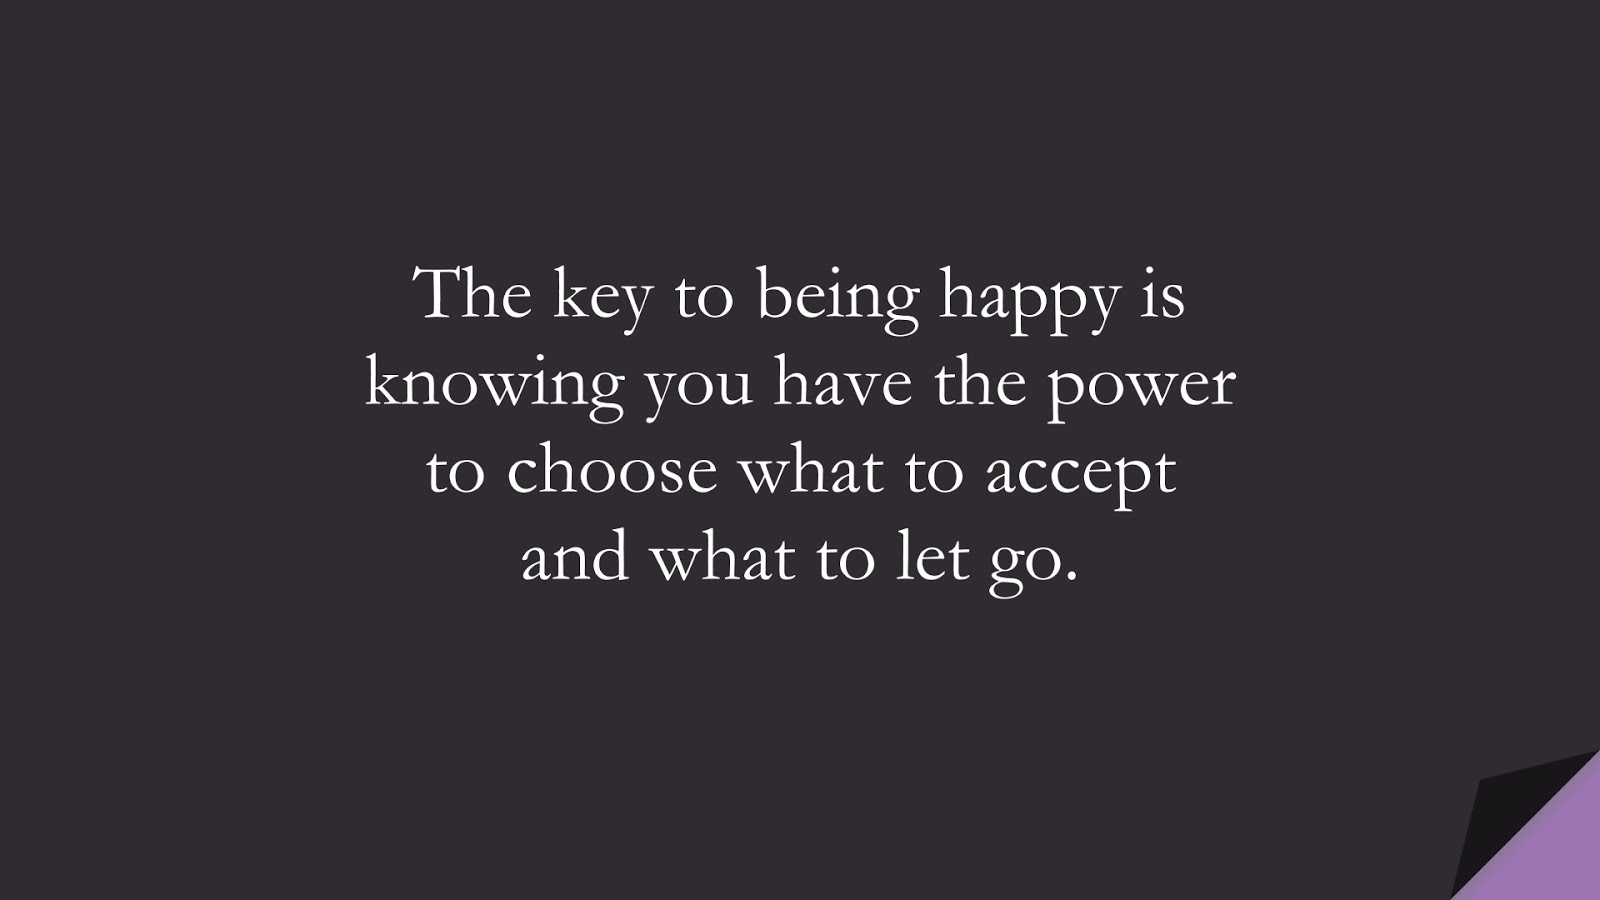 The key to being happy is knowing you have the power to choose what to accept and what to let go.FALSE